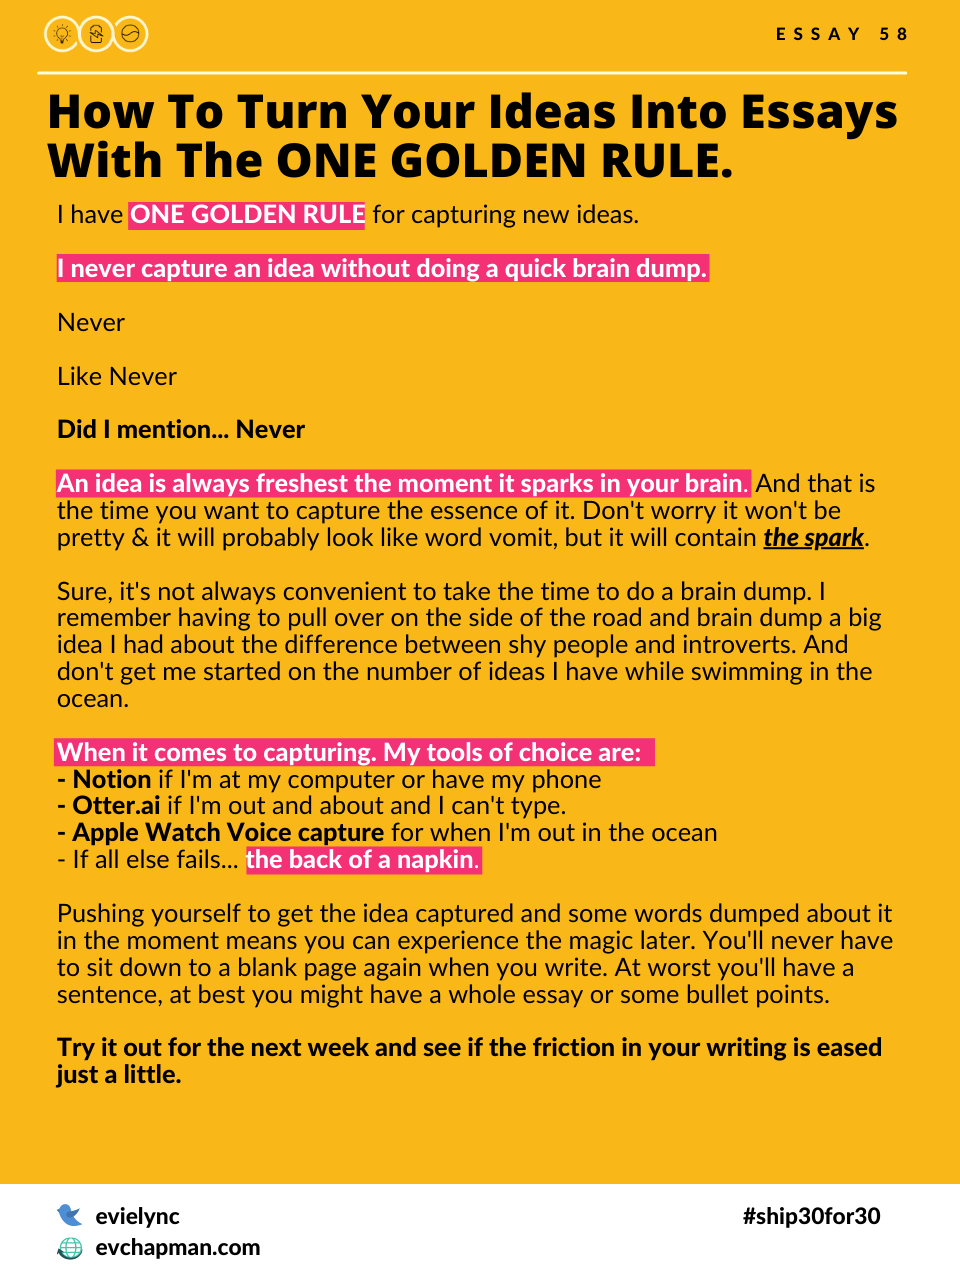 How To Turn Your Ideas Into Essays With One Golden Rule